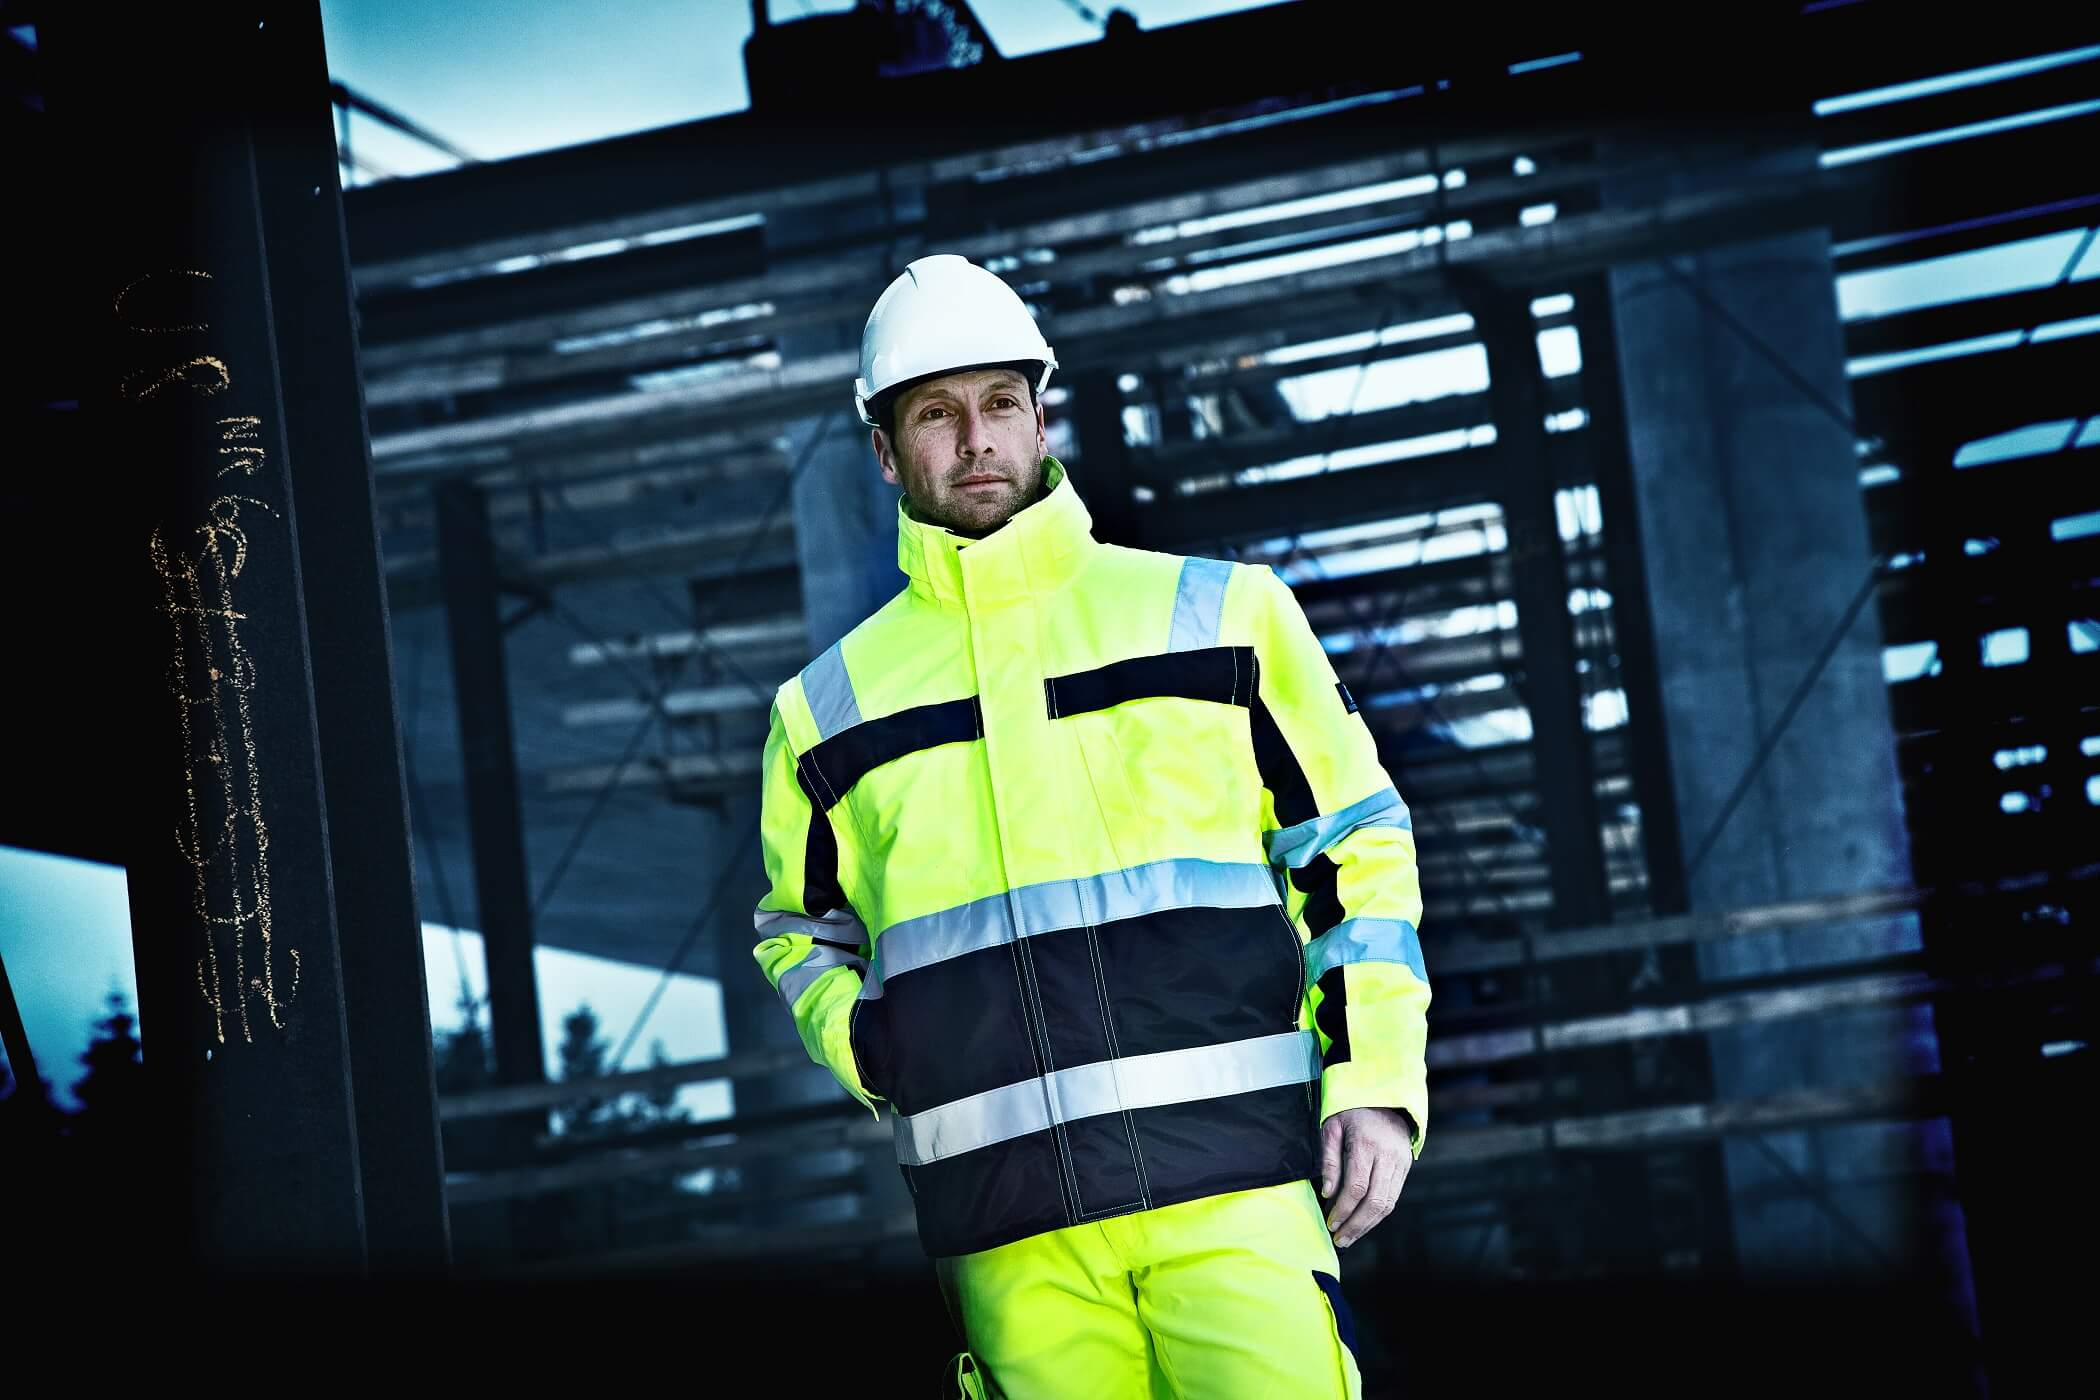 Man - Protective clothing Fluorescent yellow - Environment